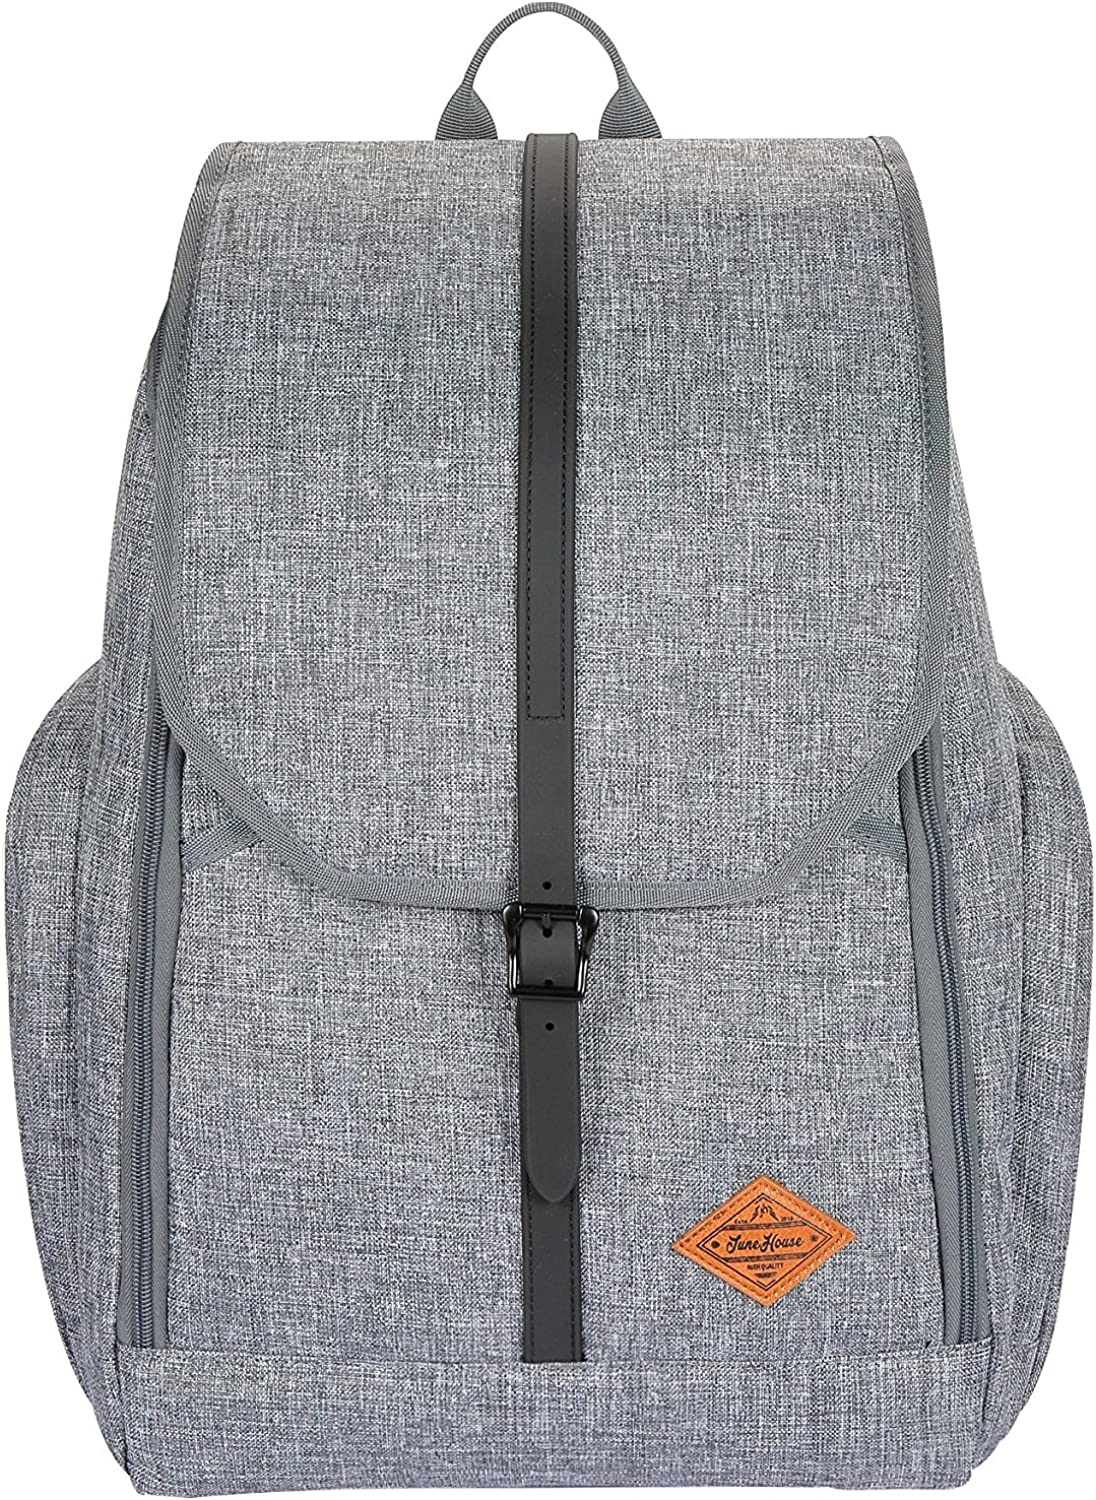 JuneHouse MM Fashion Men Women laptop backpack Fit Up to 15 Inch Laptop